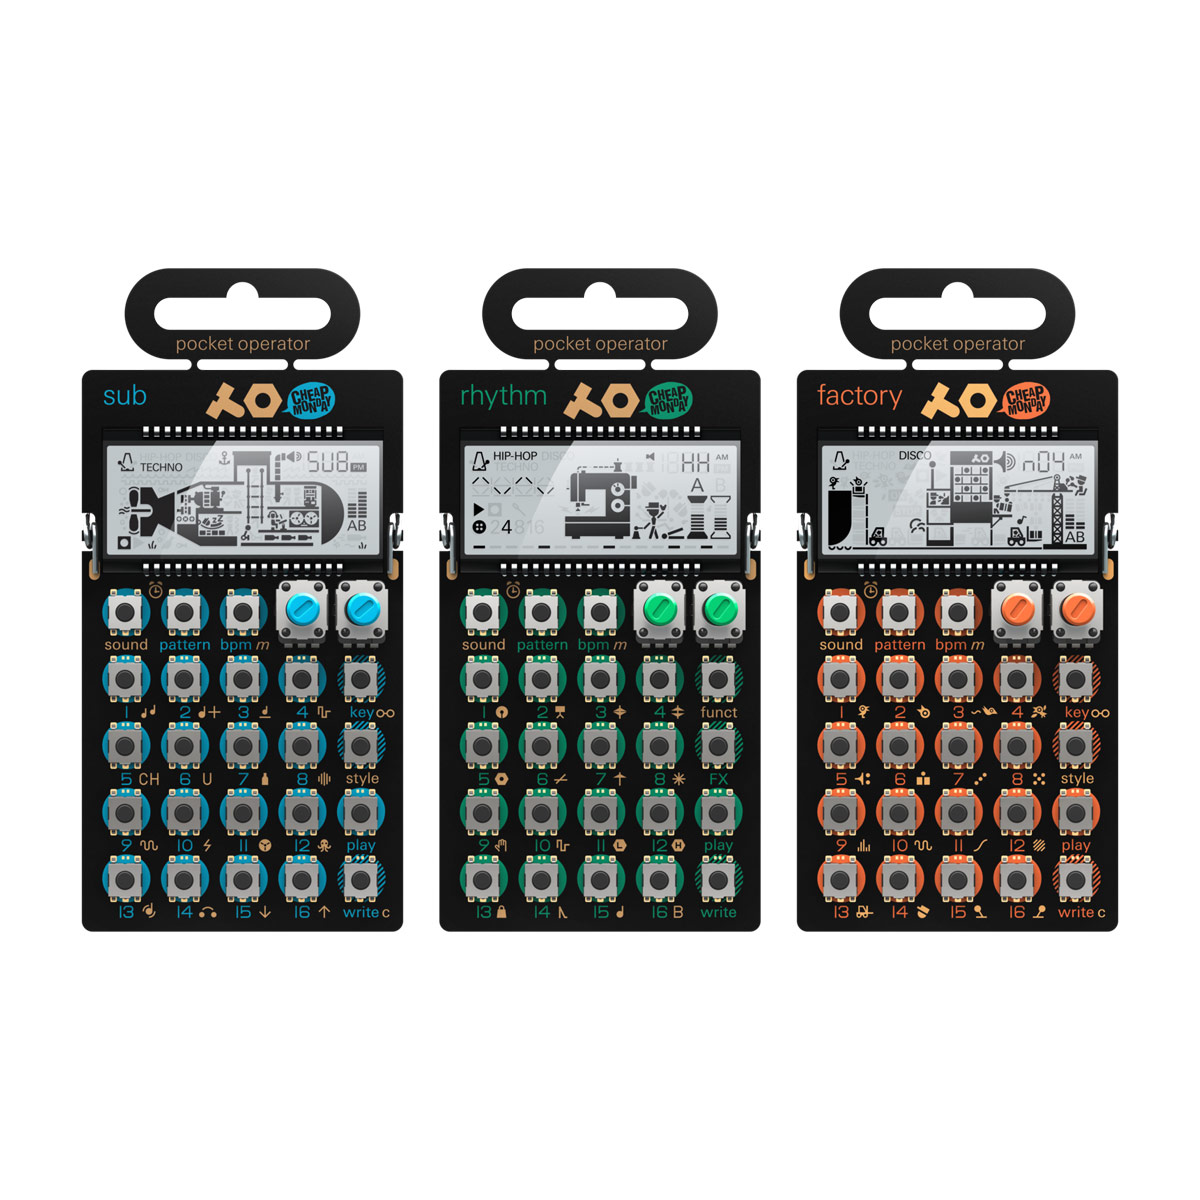 POCKET OPERATOR BUNDLE